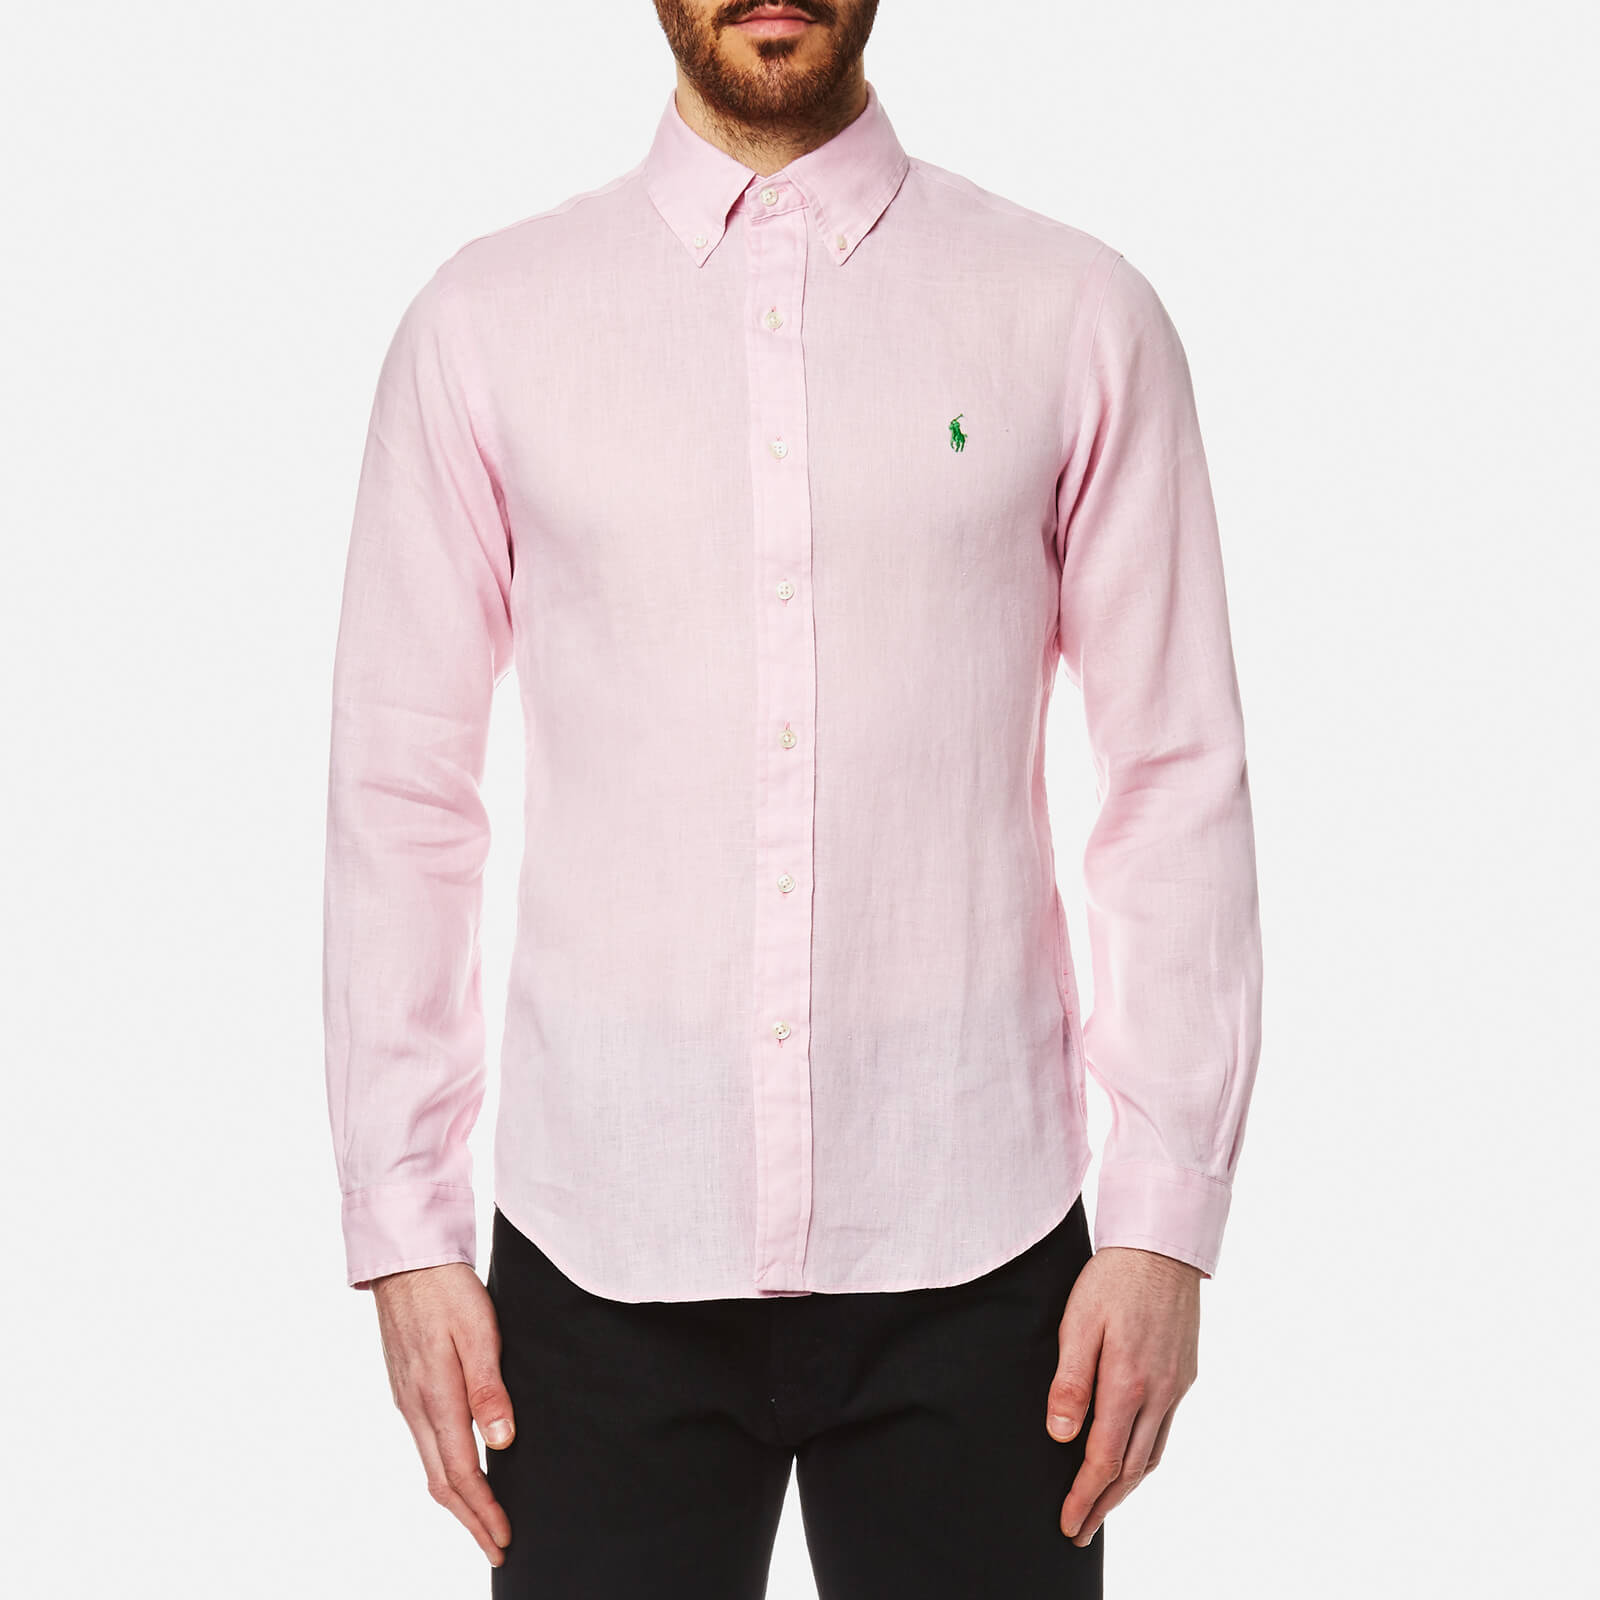 837ebd39e Polo Ralph Lauren Men's Linen Long Sleeve Slim Fit Shirt - Pink - Free UK  Delivery over £50